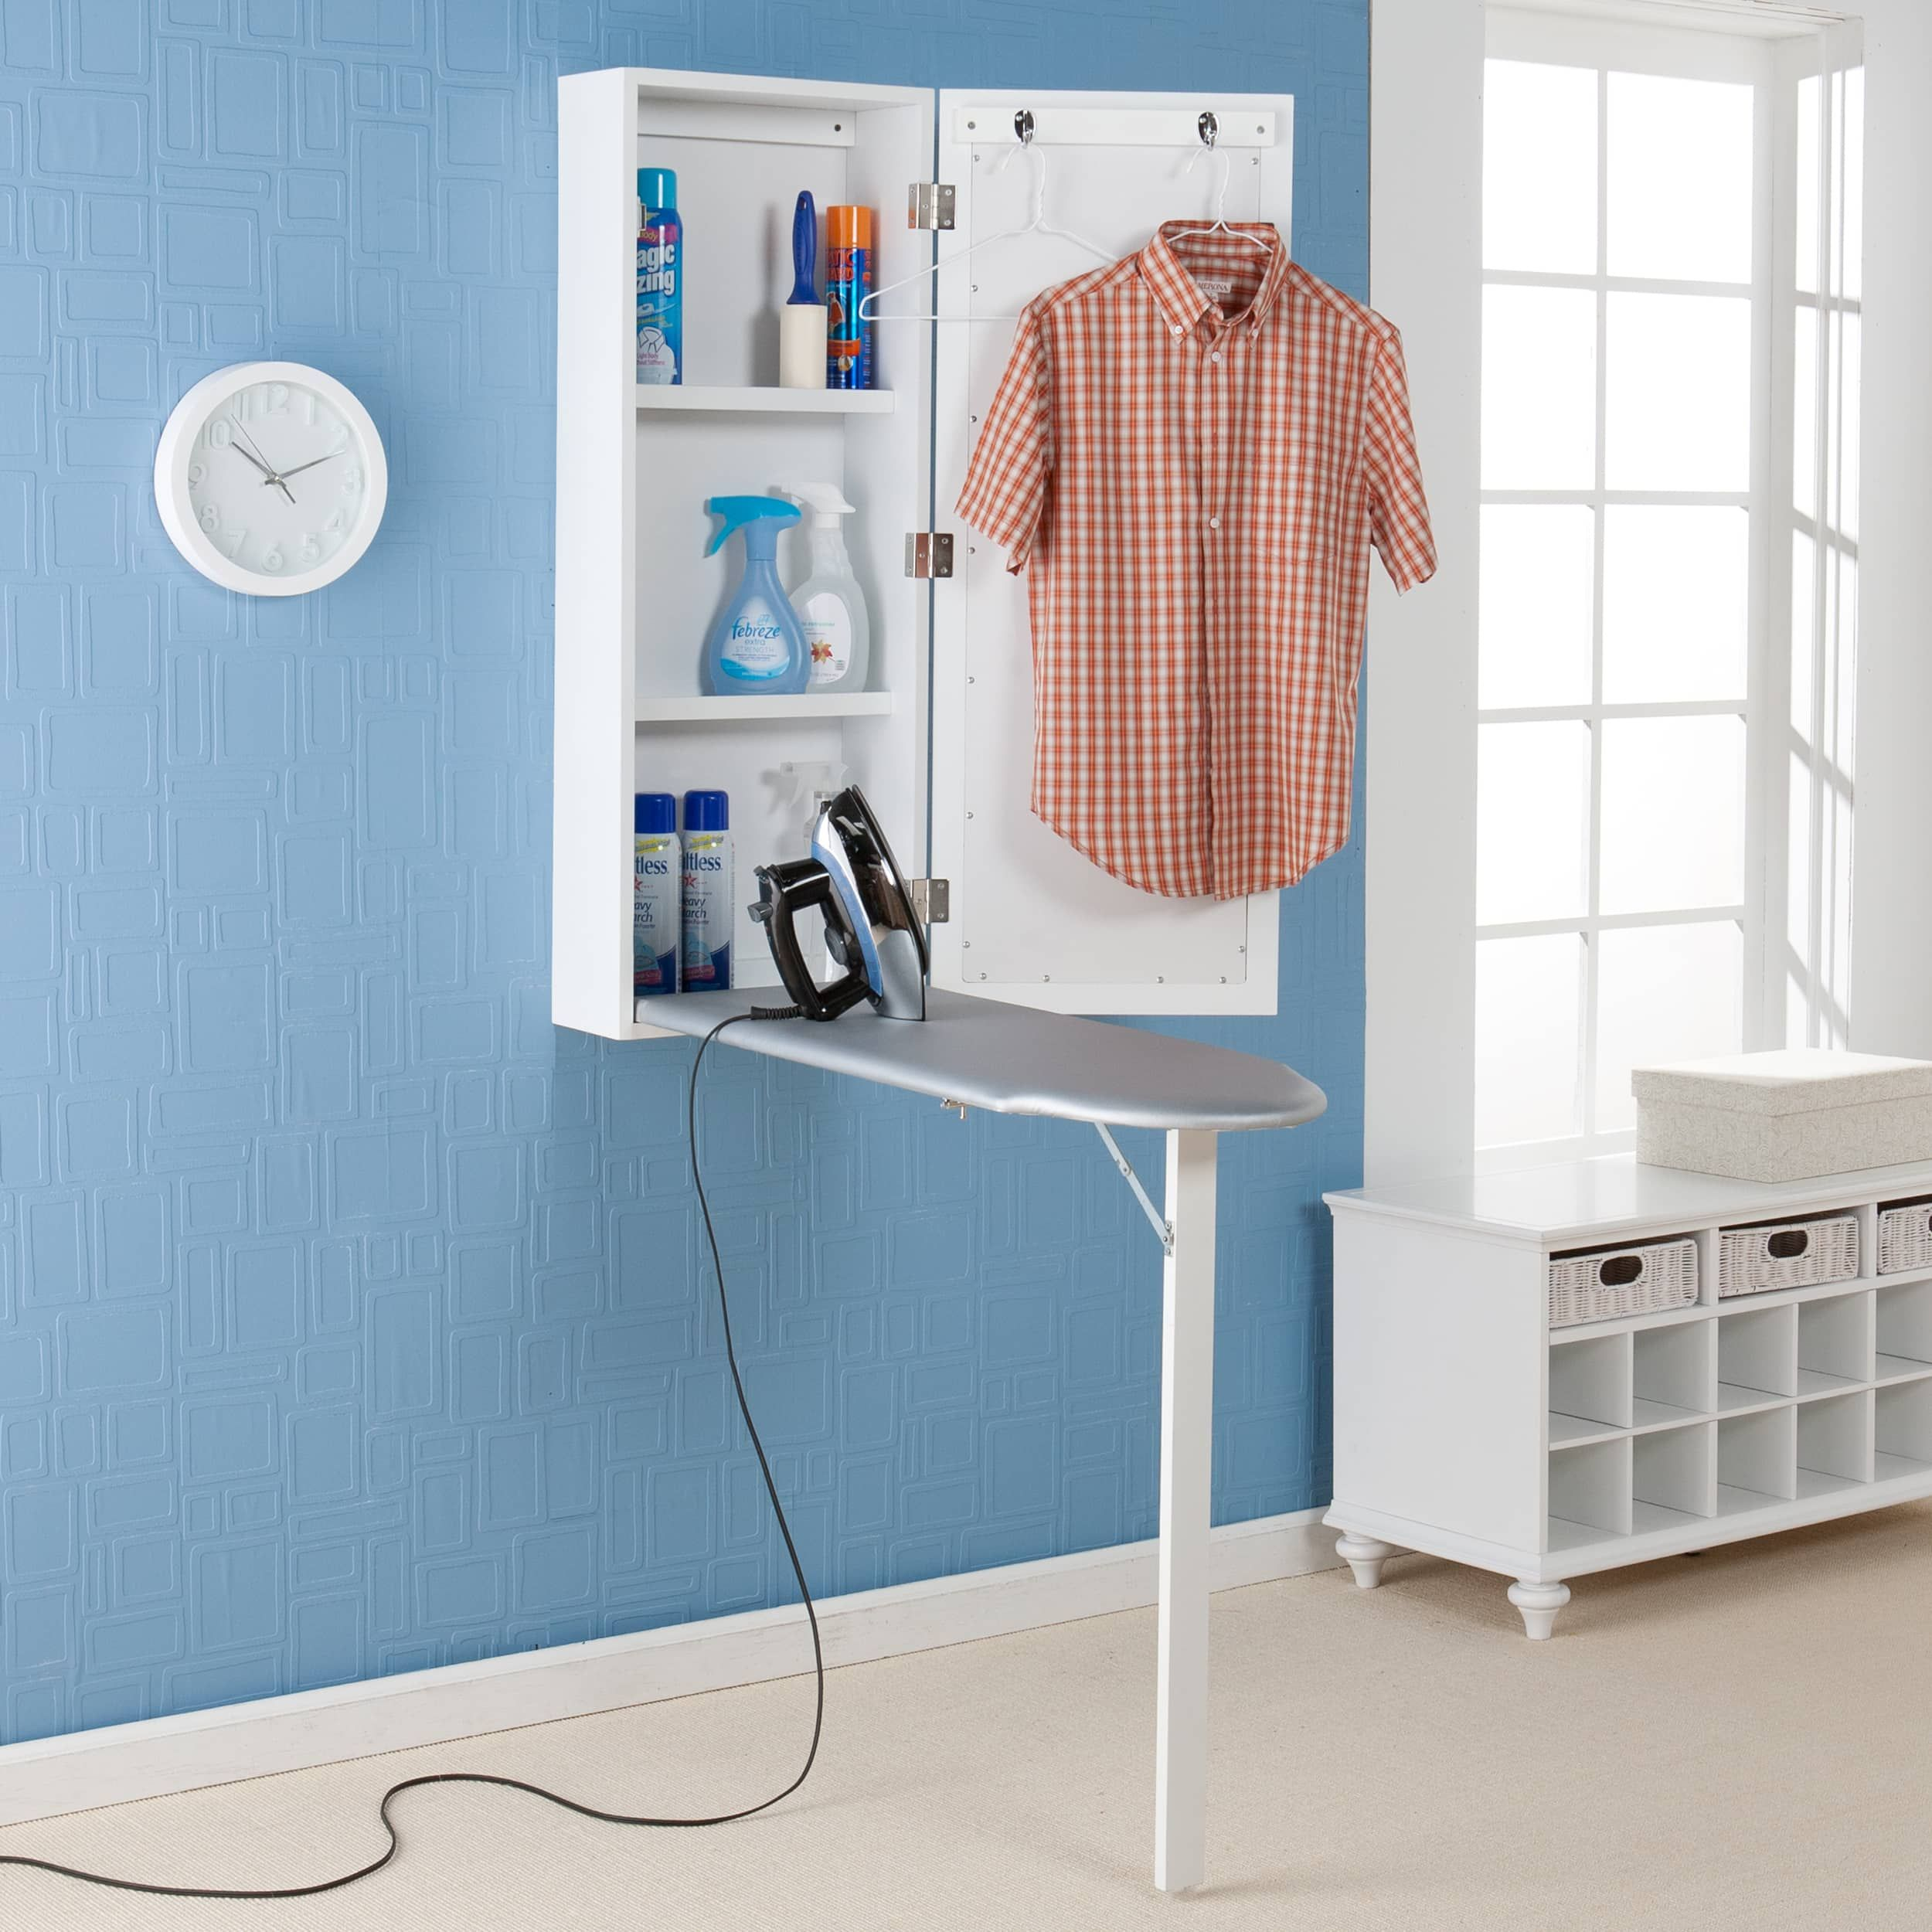 Wallmounted Ironing Board and Storage Center (With images